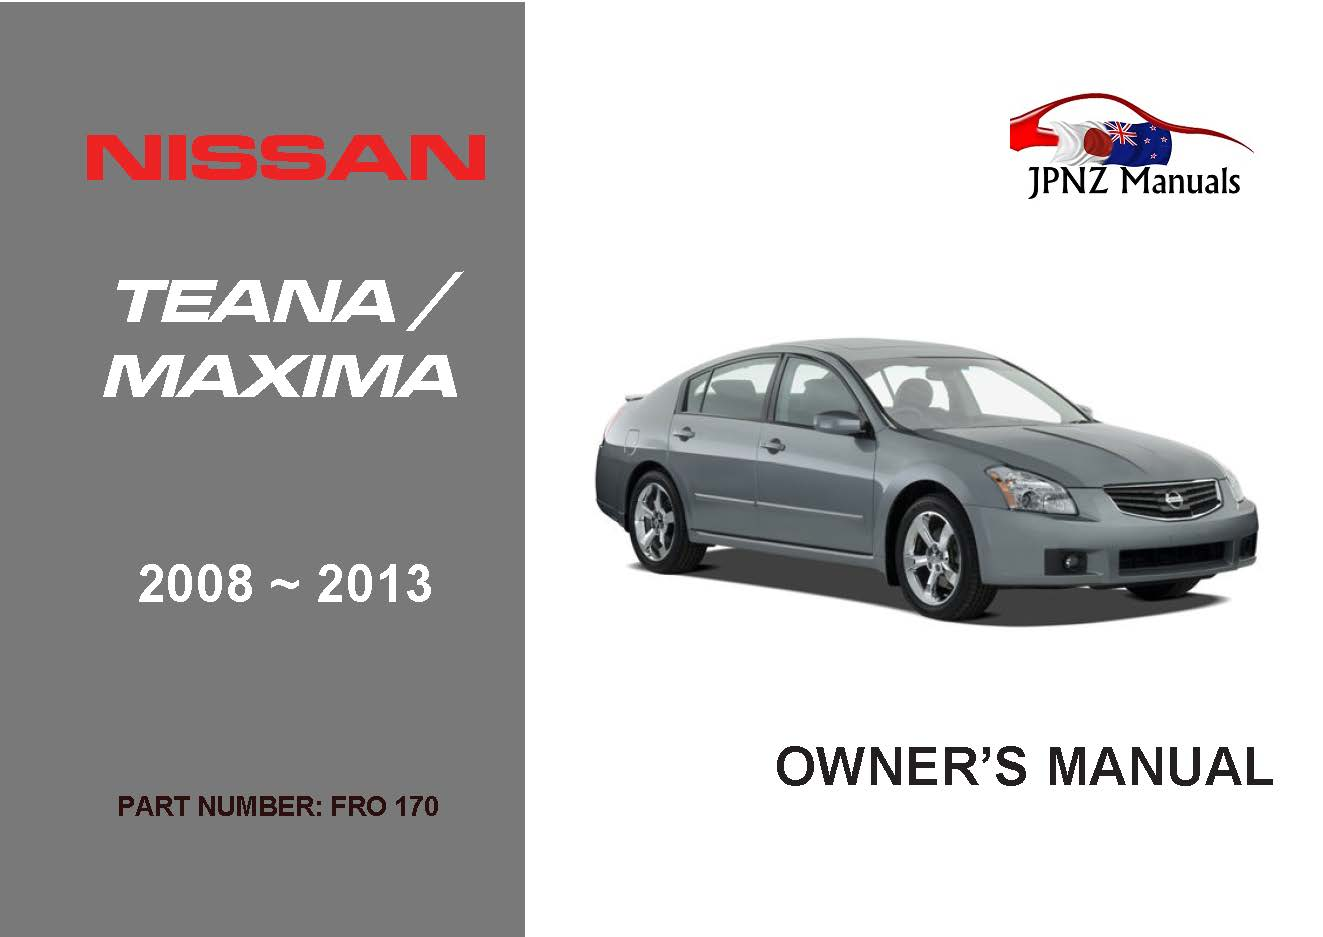 nissan teana maxima car owners manual 2008 2013 jpnz new rh jpnz co nz Nissan Teana 2013 HD Nissan Teana 2014 Wallpaper